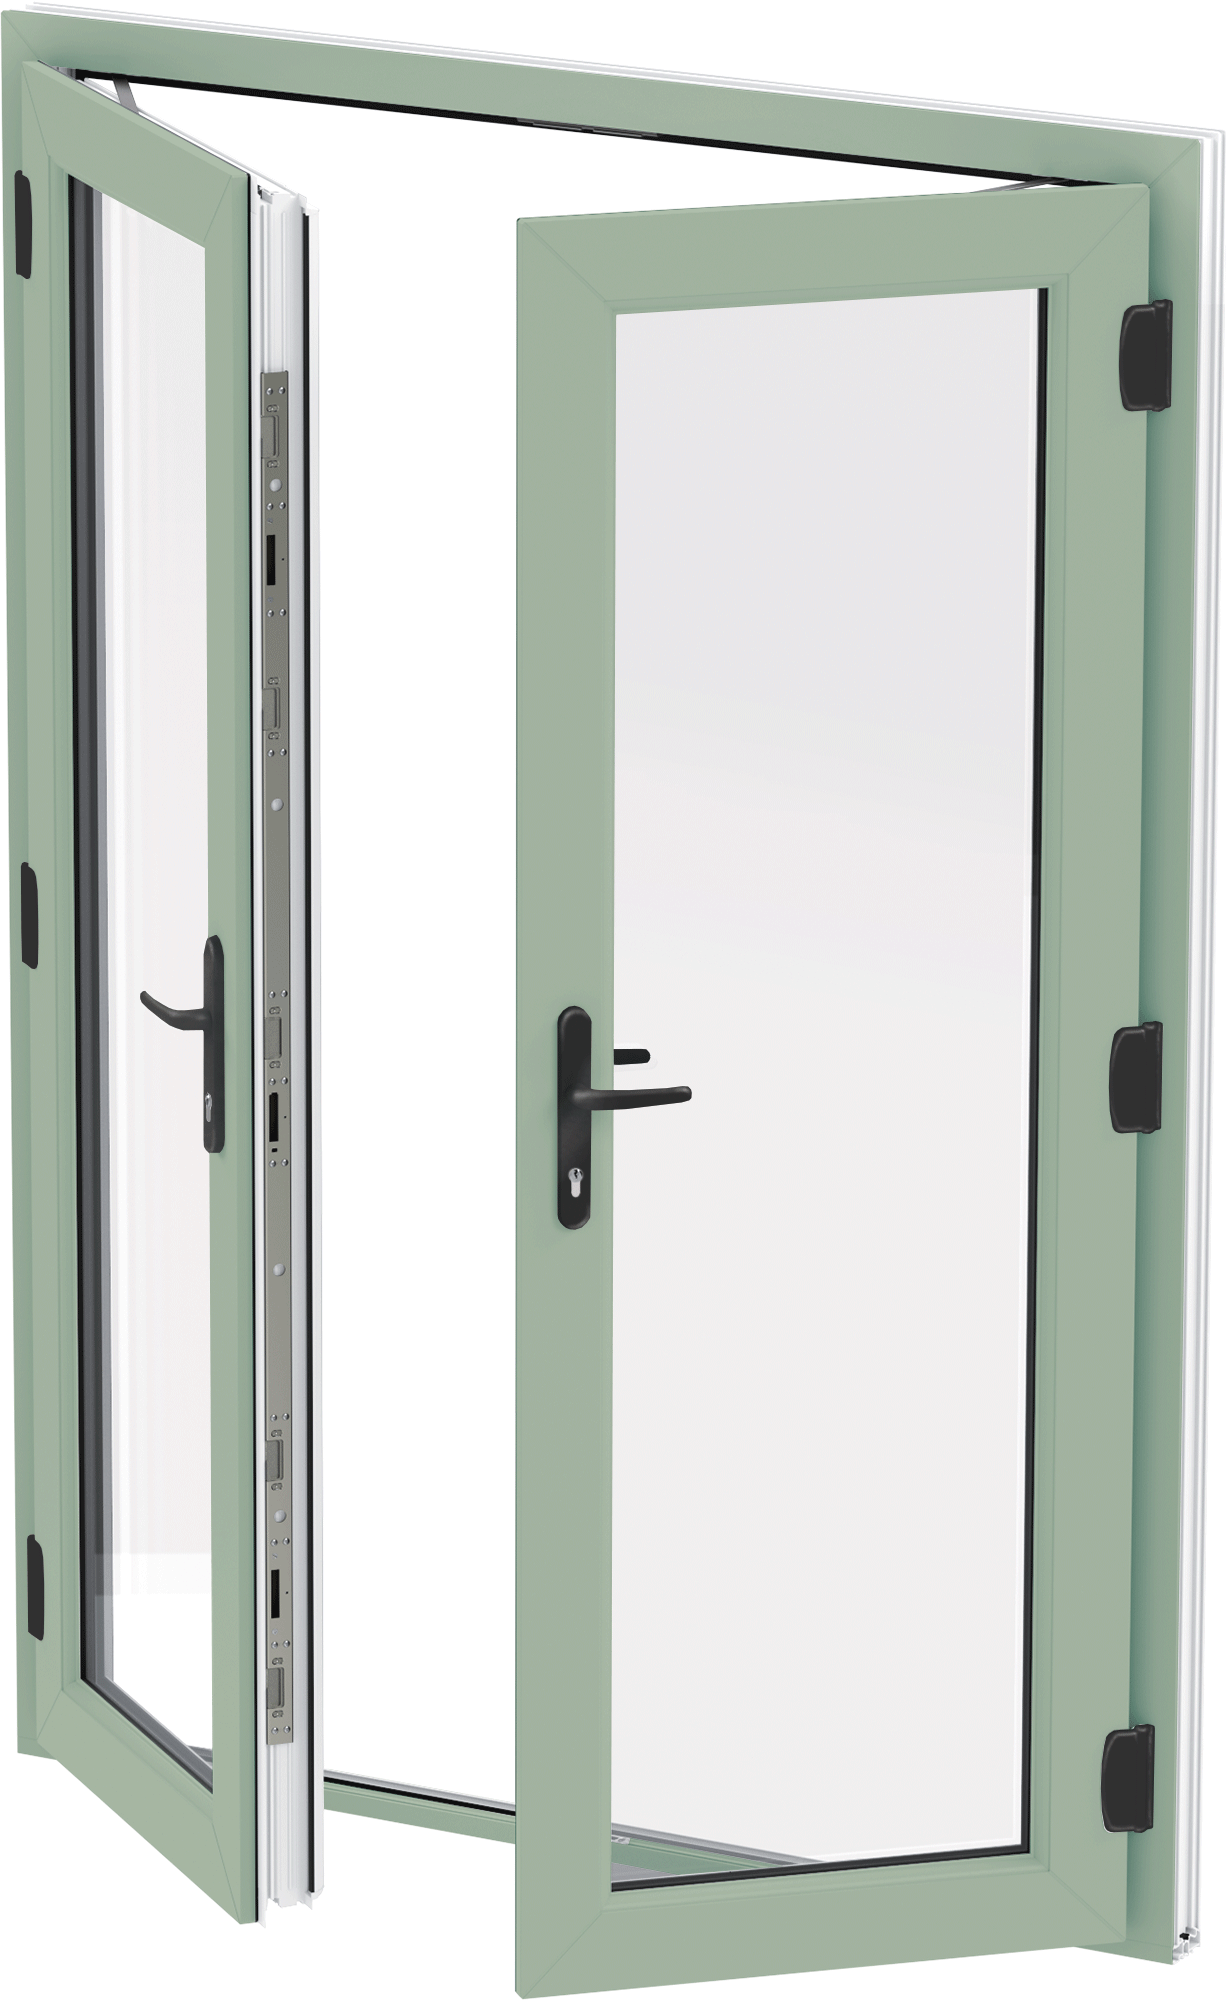 Upvc Doors Double Glazed Exterior Back Doors Reading Chartwell Green Upvc  French Door Wokingham Eventelaan Choice